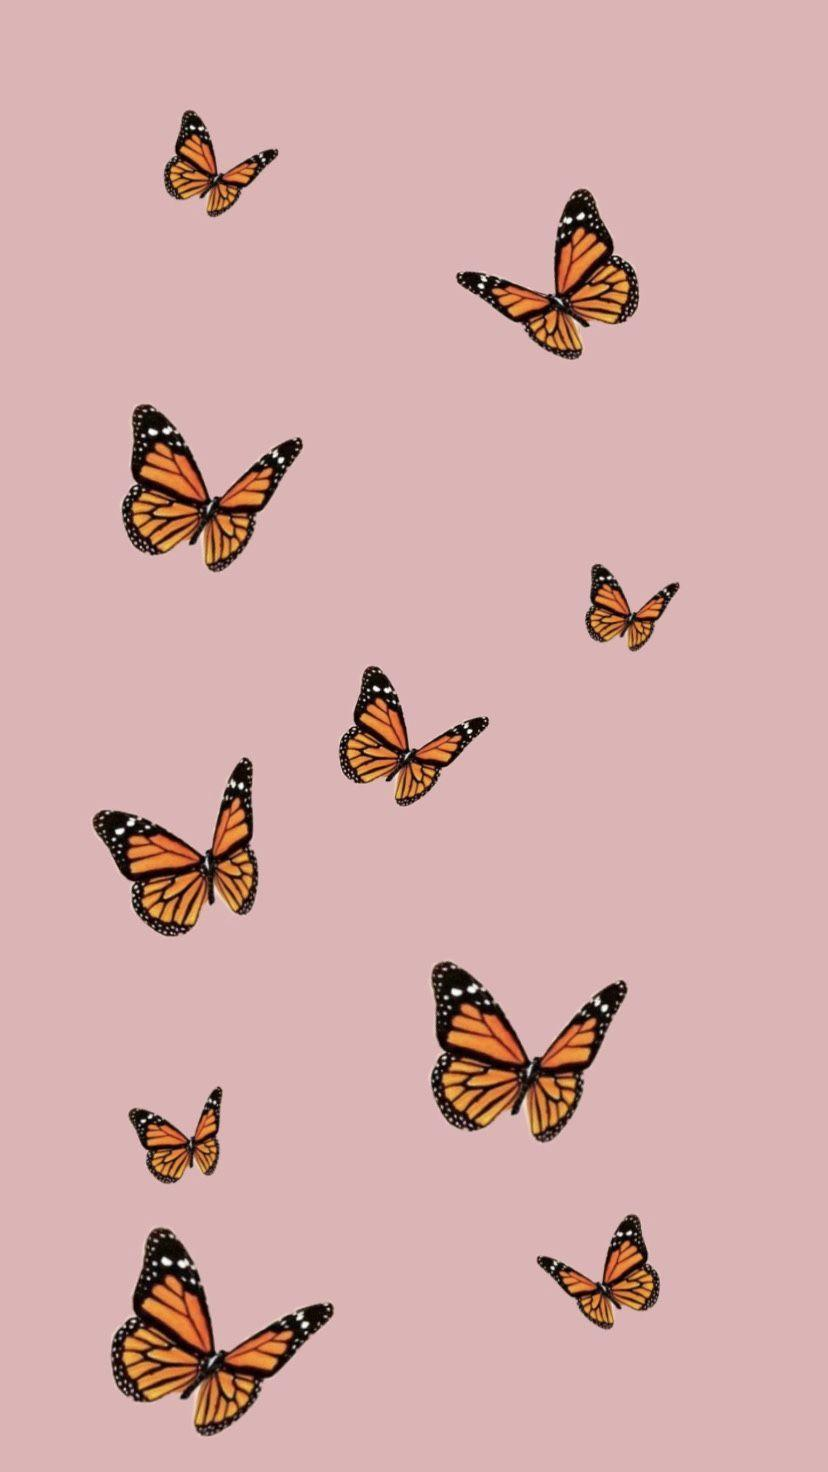 Aesthetic Butterfly Wallpapers